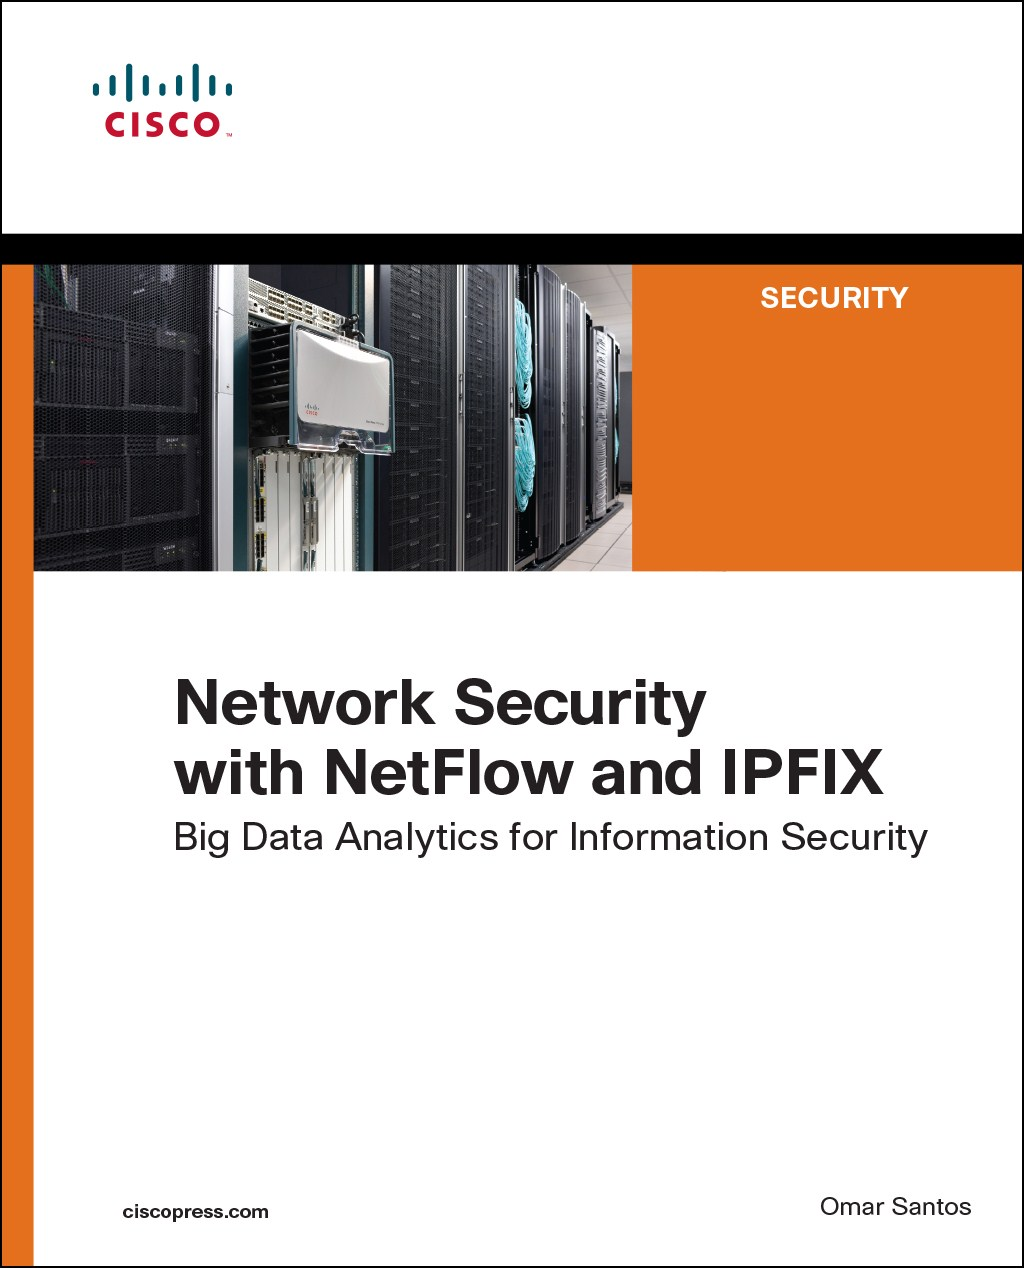 Network Security with NetFlow and IPFIX: Big Data Analytics for Information Security